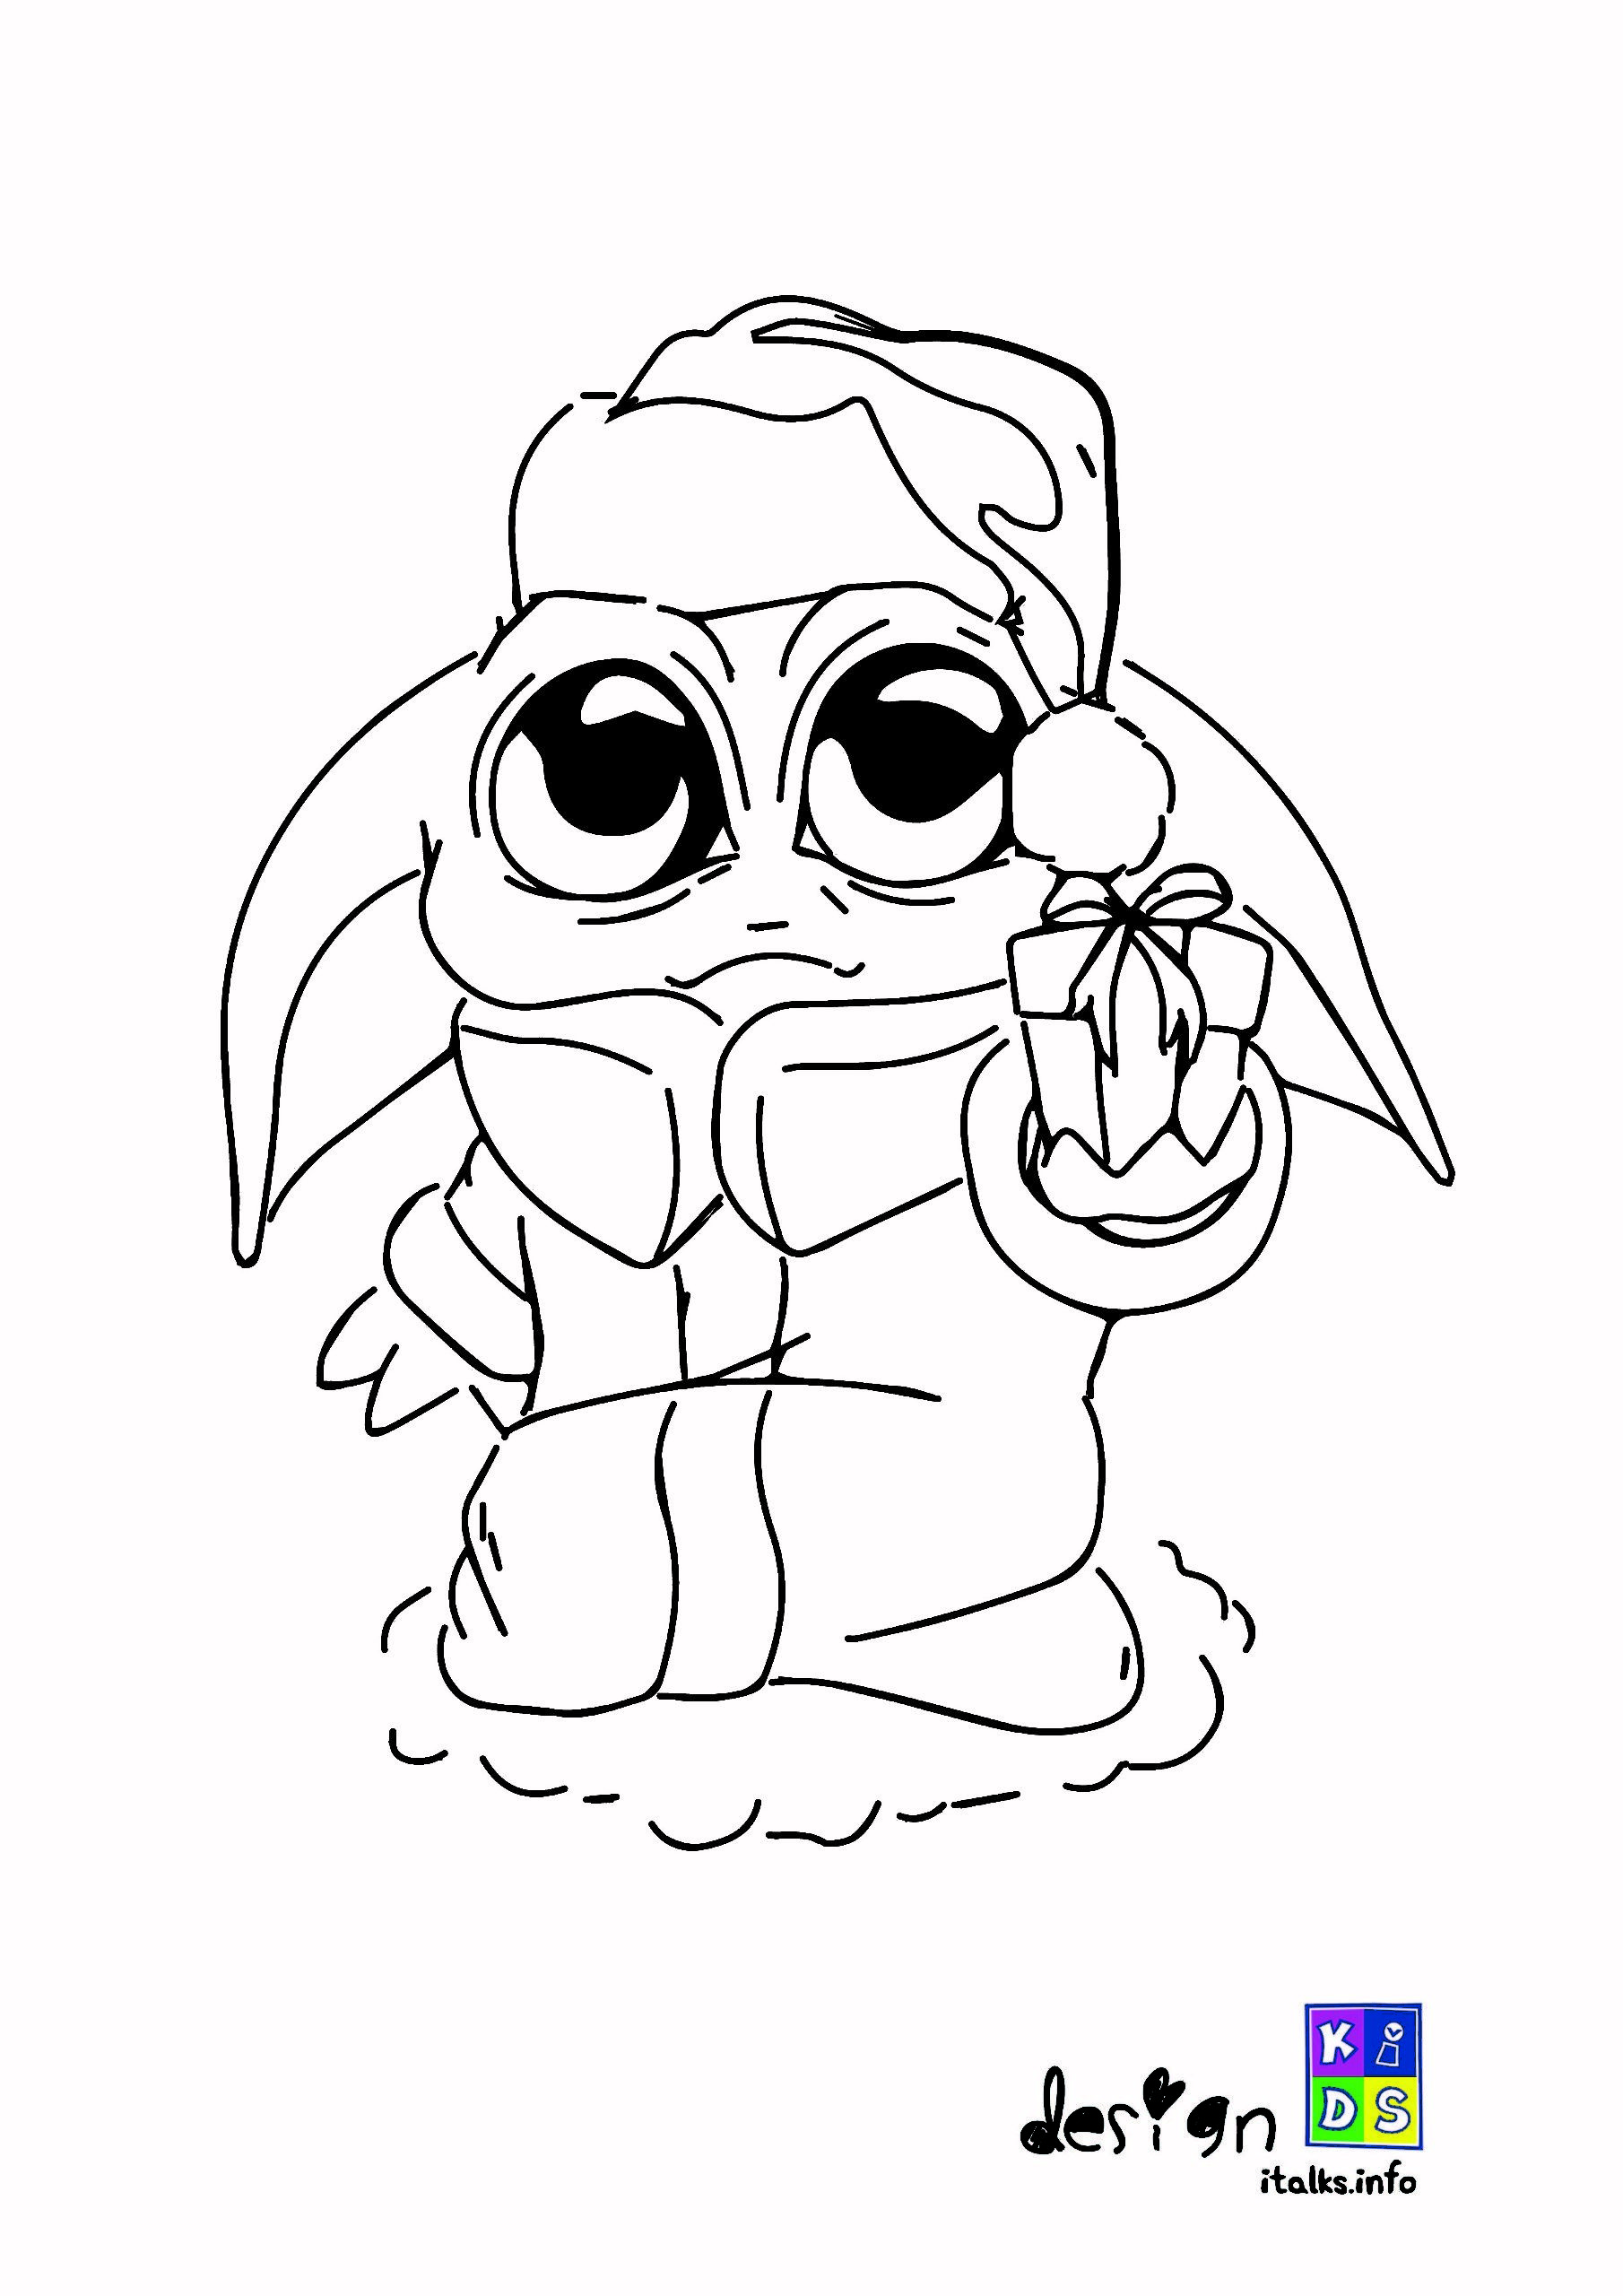 Baby Yoda Christmas Coloring Page Coloring Pages Christmas Coloring Pages Christmas Colors